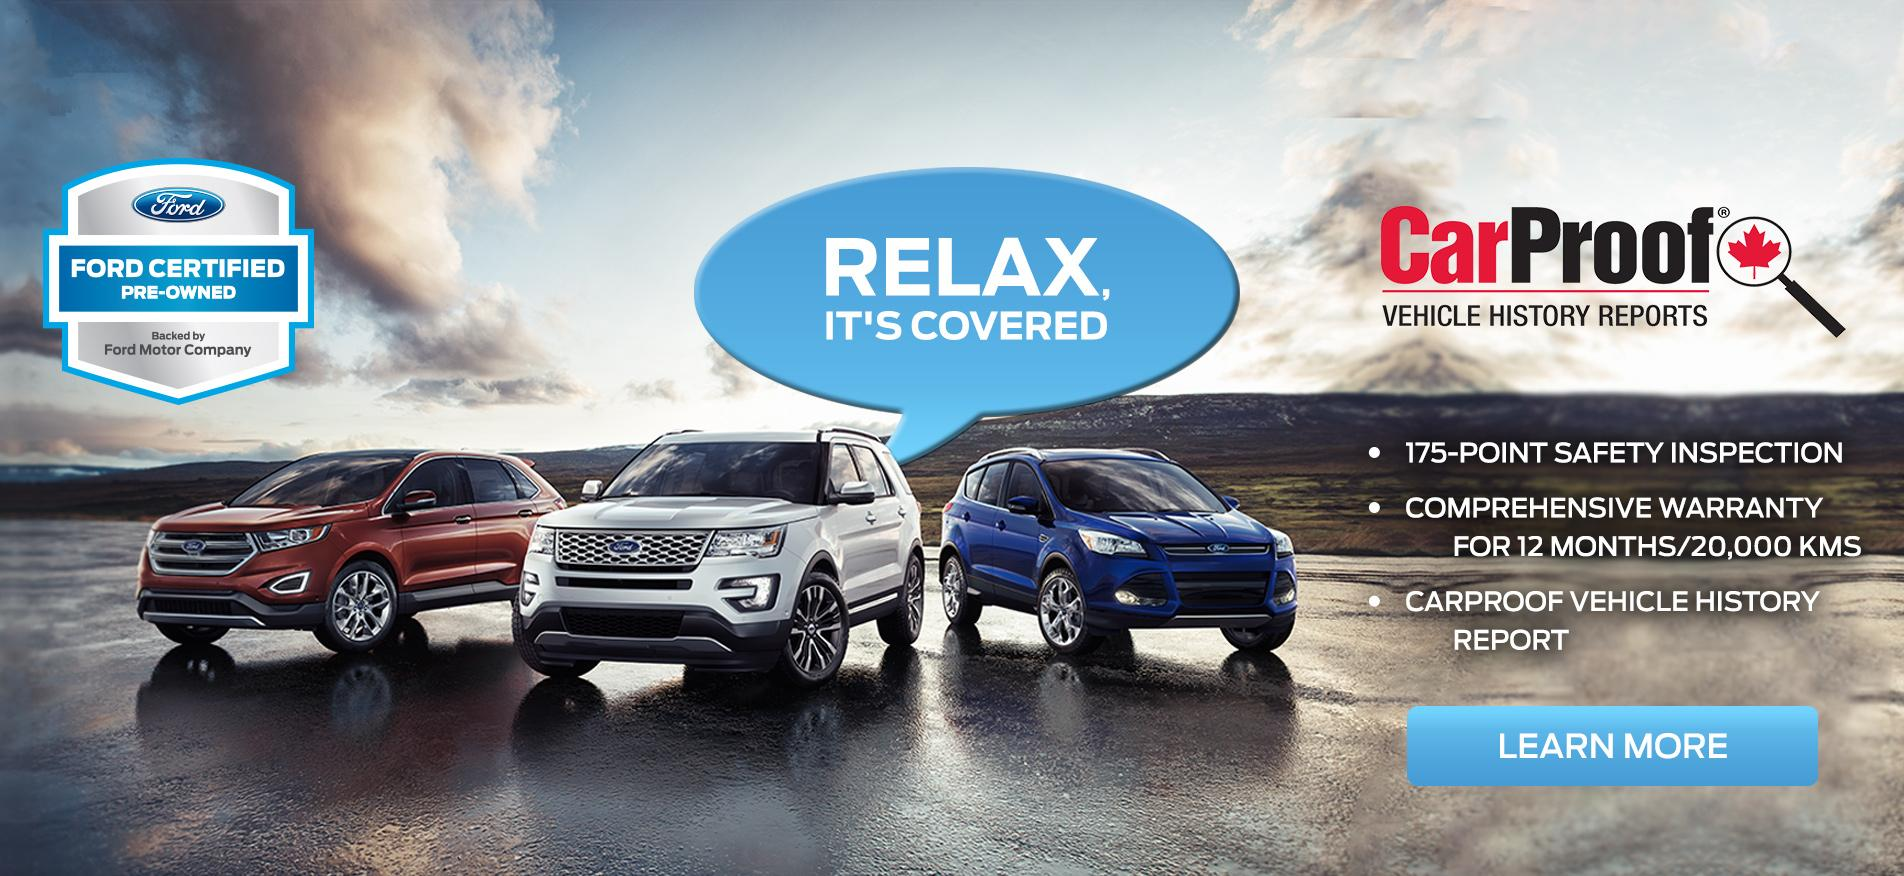 Ford Certified Pre-Owned Cars SUVs and Trucks at Merlin Ford Saskatoon